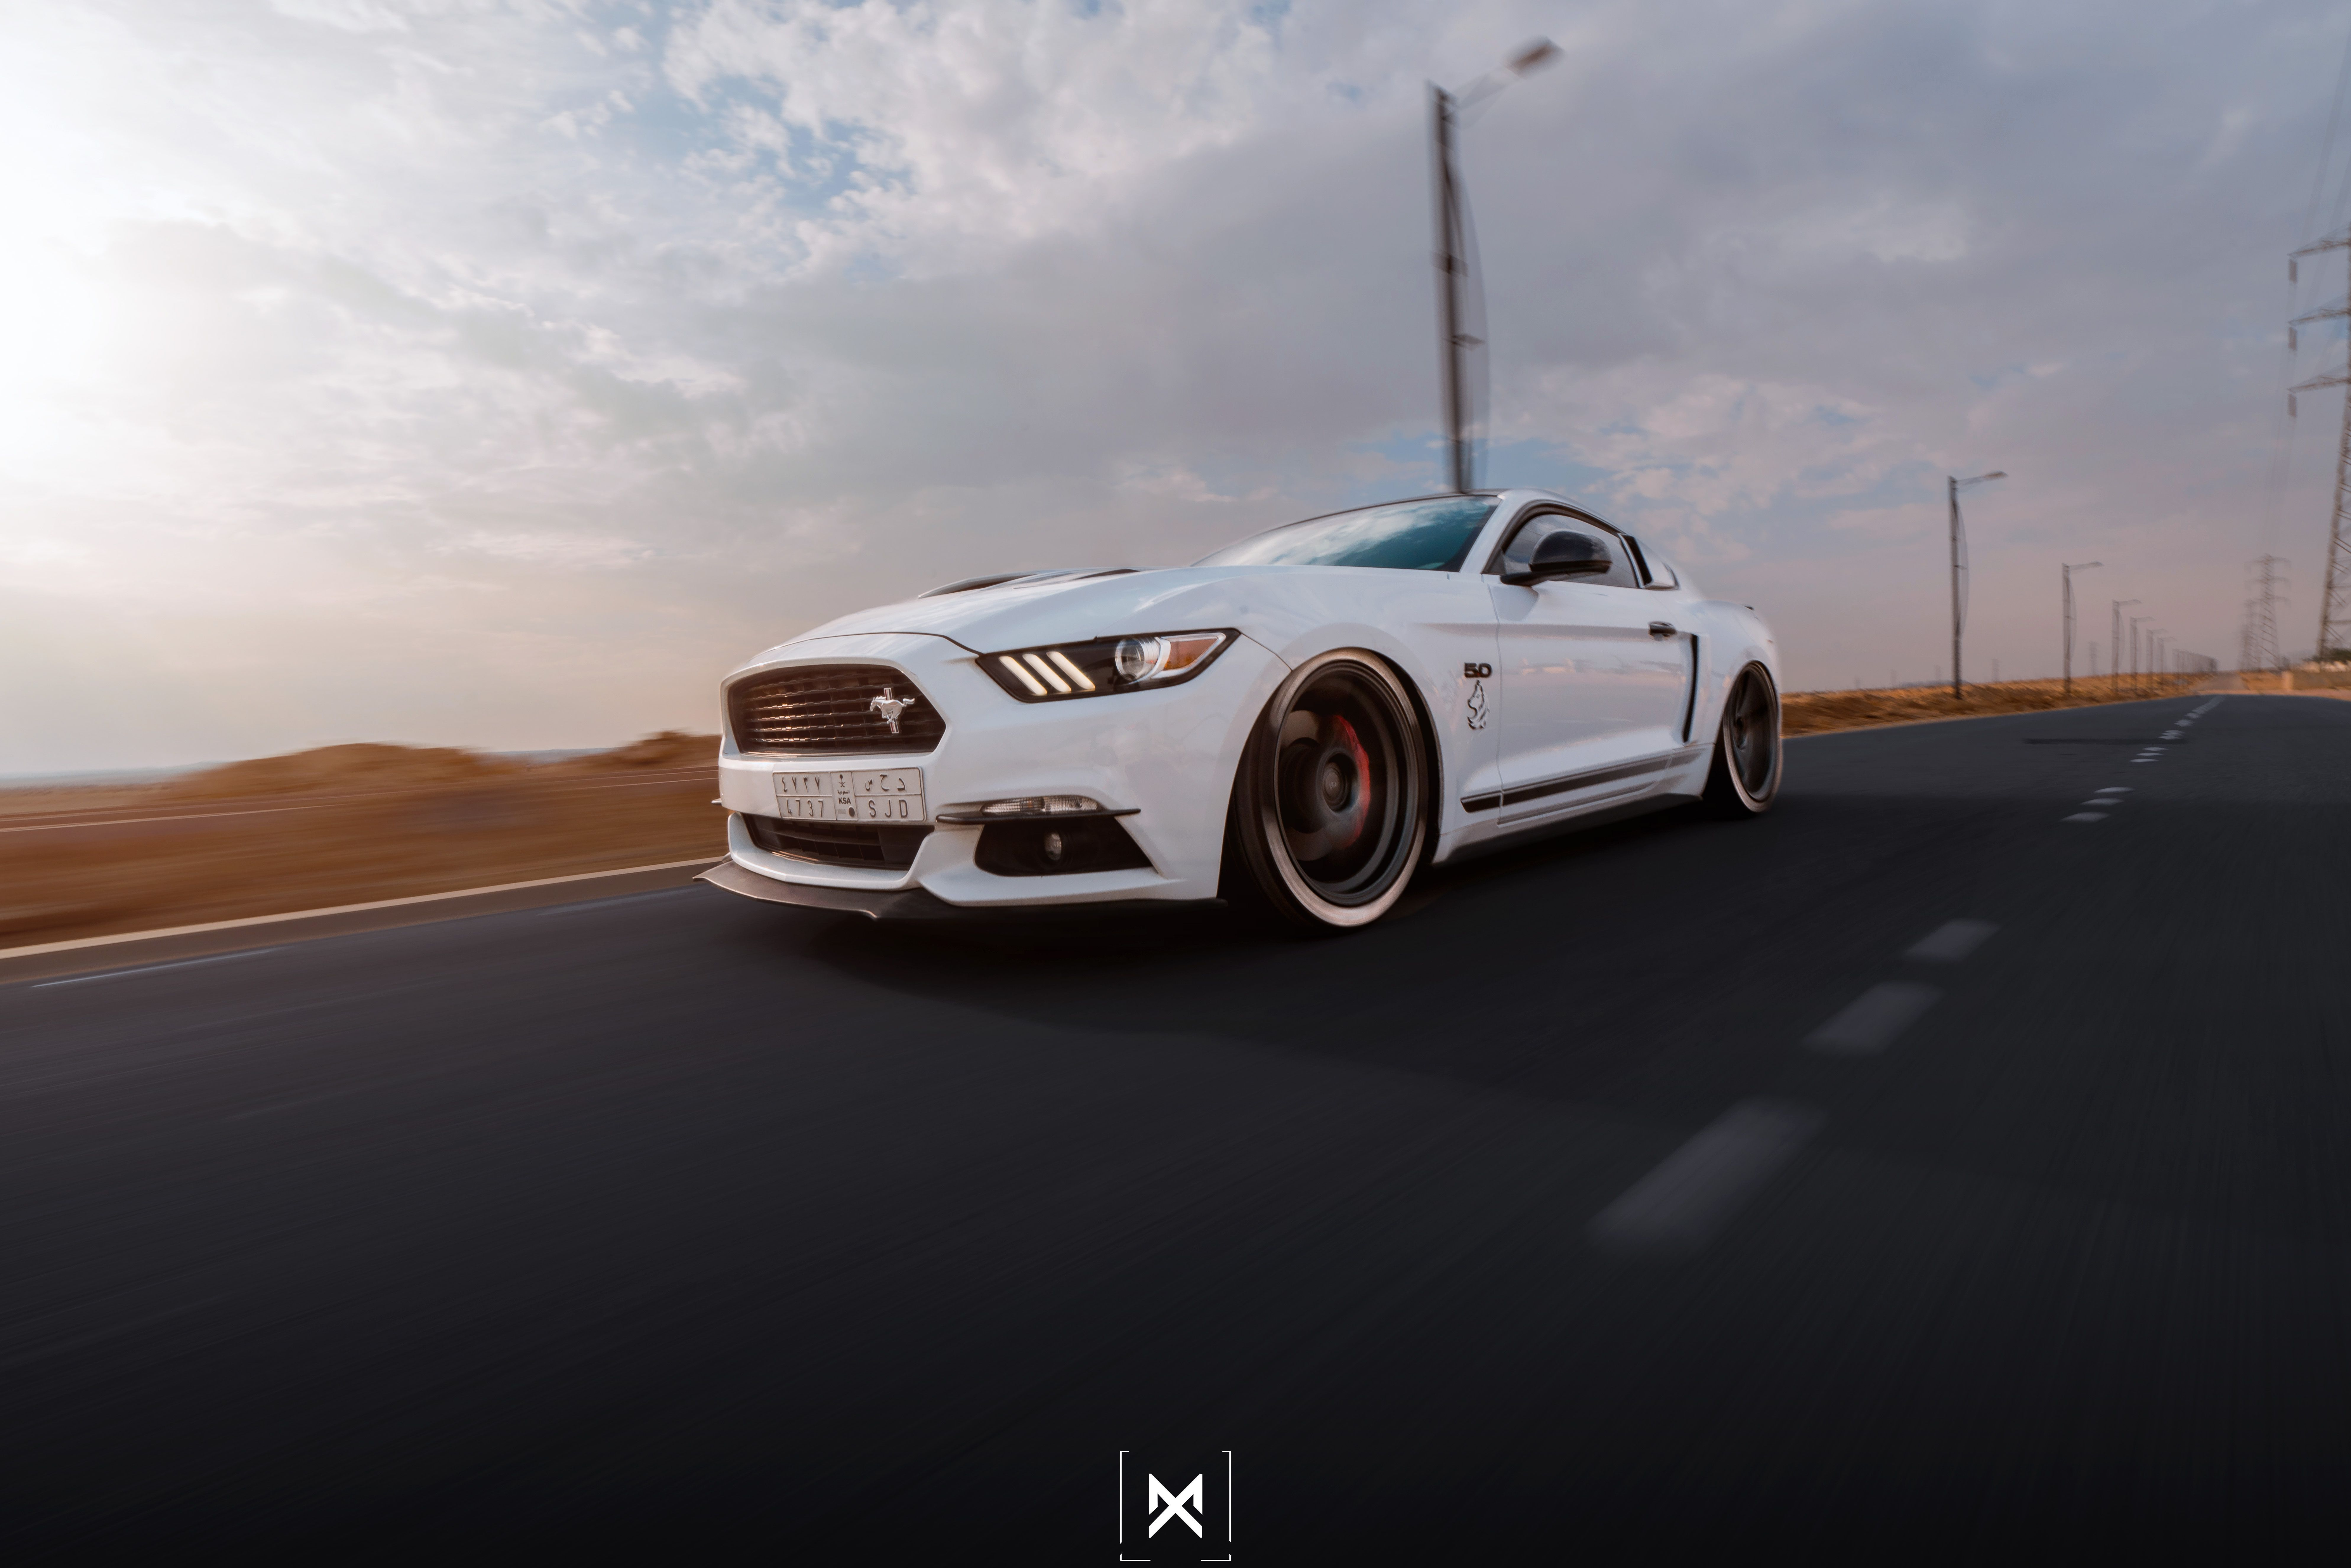 Sultan Hakeem With A Beautiful Mustang All The Way Over In Saudi Arabia Mustang 2015 Mustang